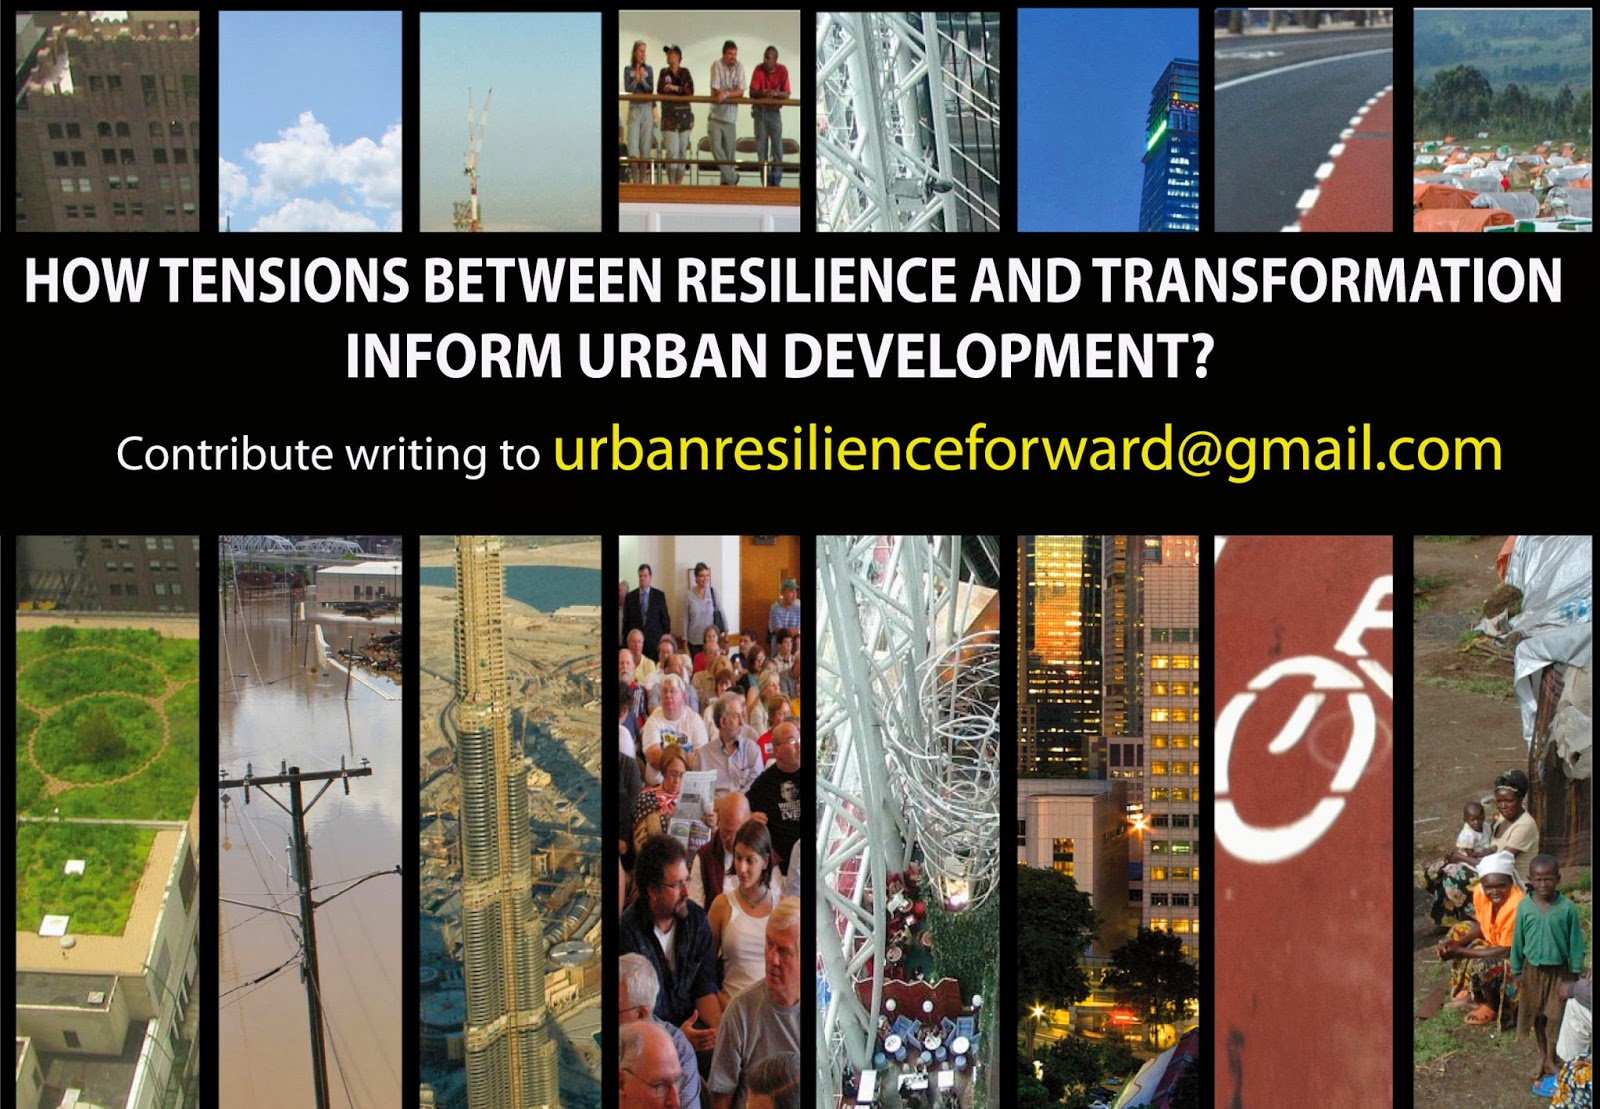 Contribute to the last discussion on Urban Resilience and Transition